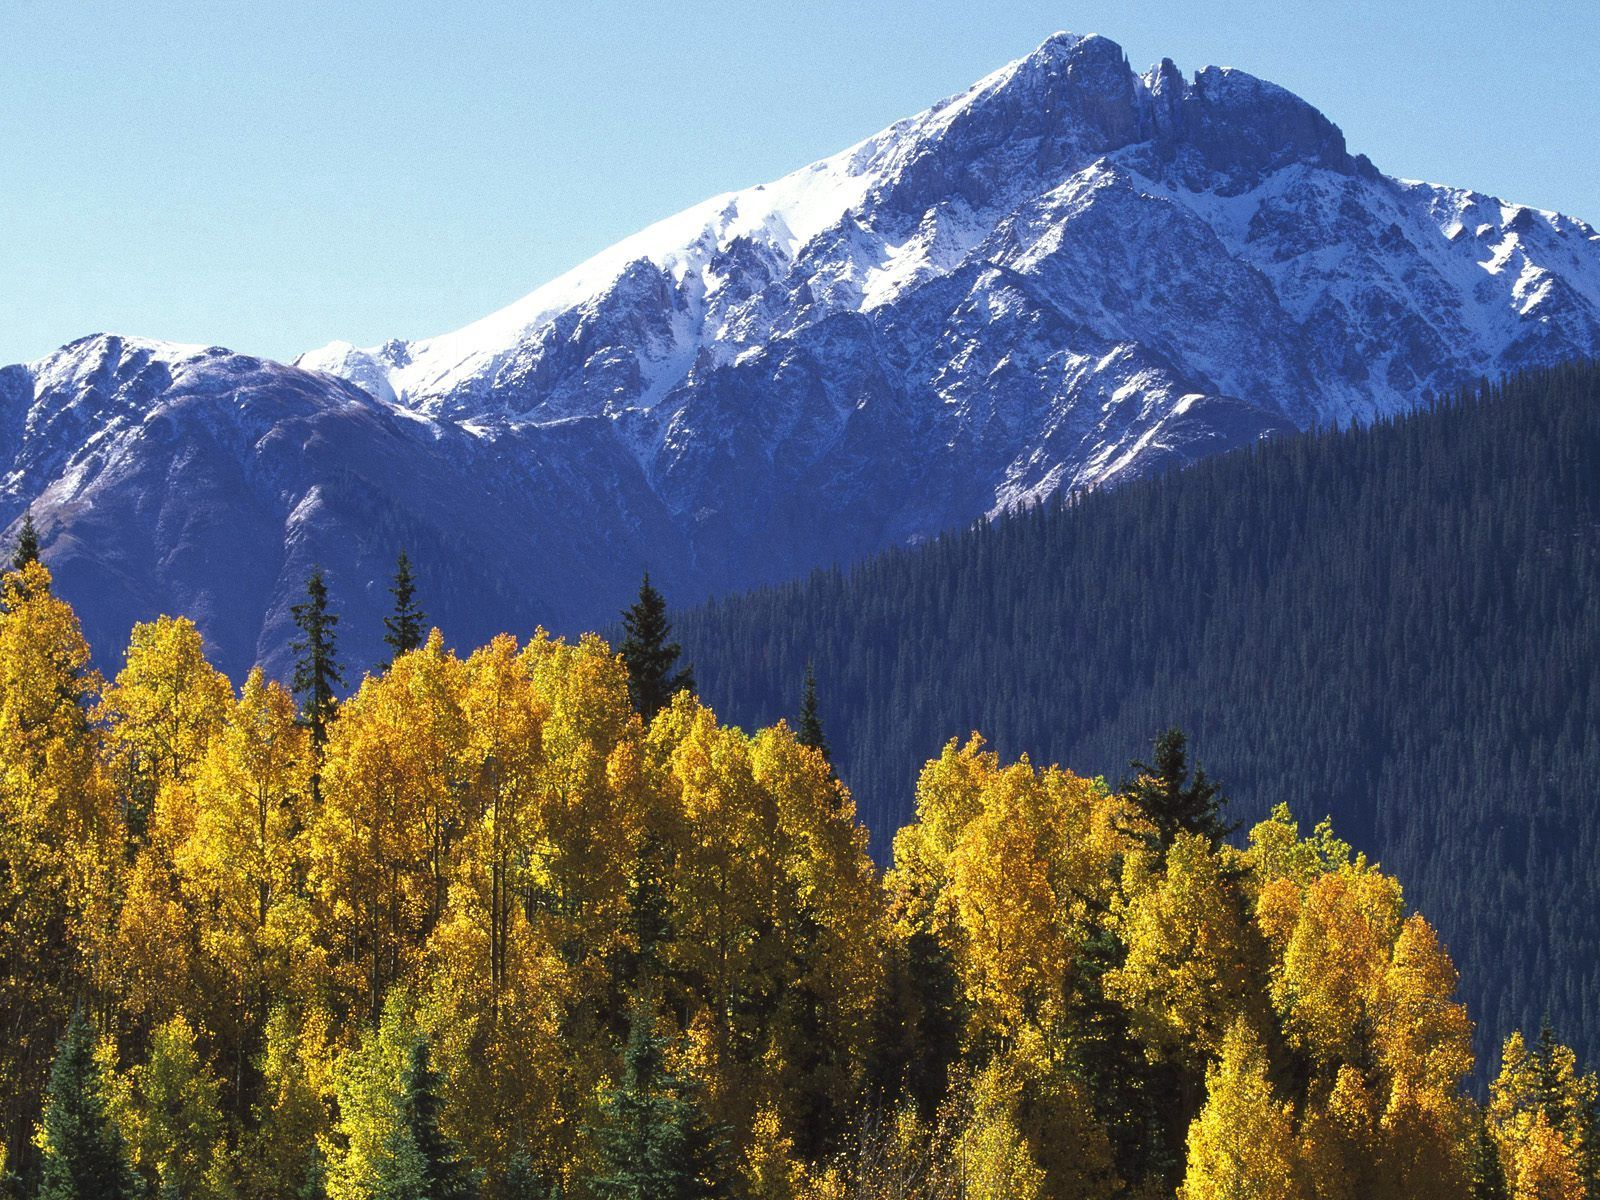 148468 download wallpaper Nature, Vertex, Top, Trees, Autumn, Mountains screensavers and pictures for free